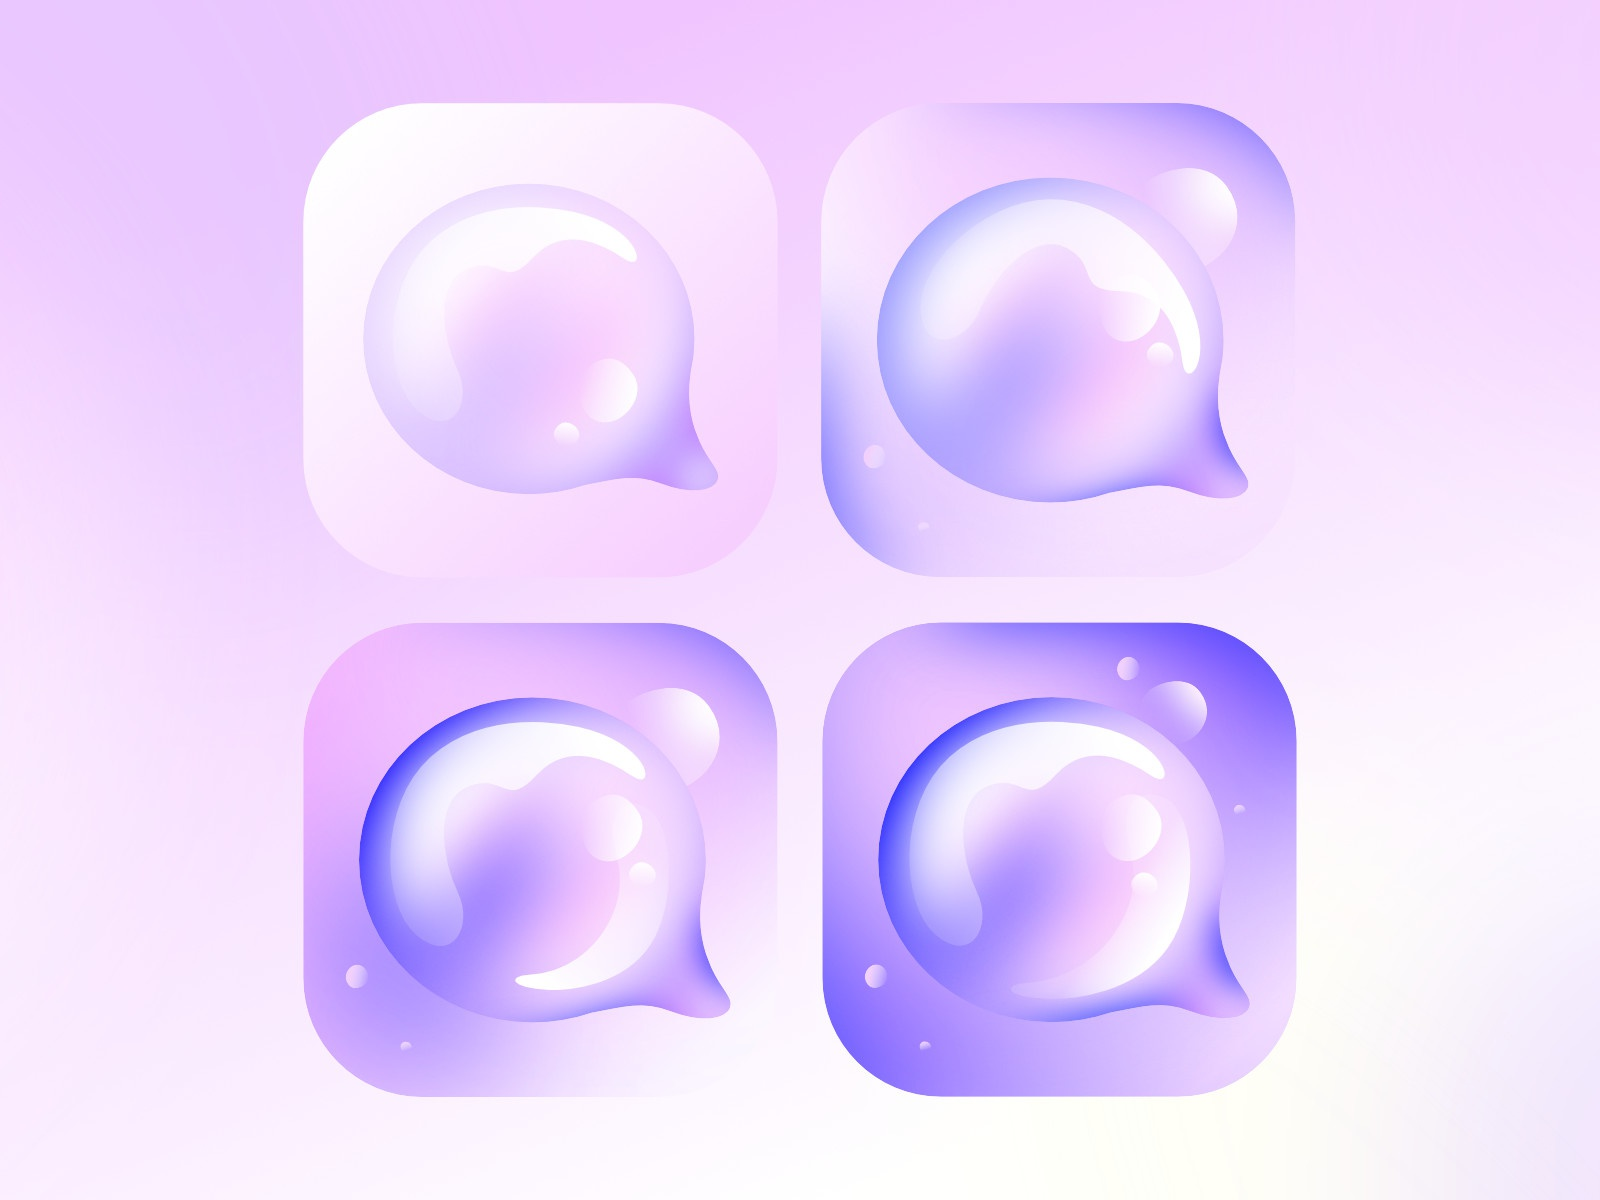 App icon progress (just for fun)